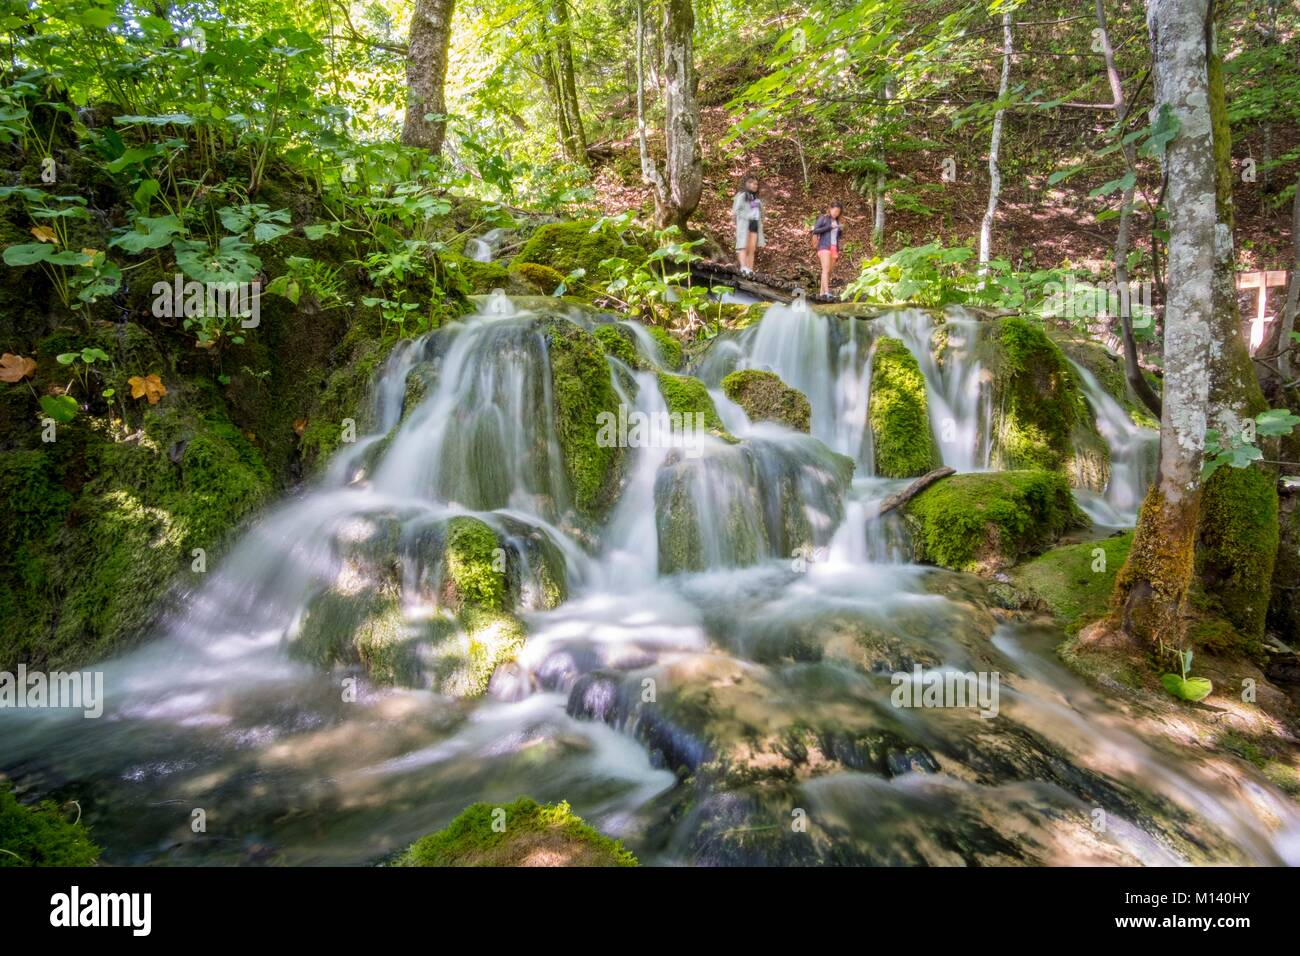 Croatia, North Dalmatia, Plitvice Lakes National Park listed as World Heritage by UNESCO, walking trail at the level - Stock Image